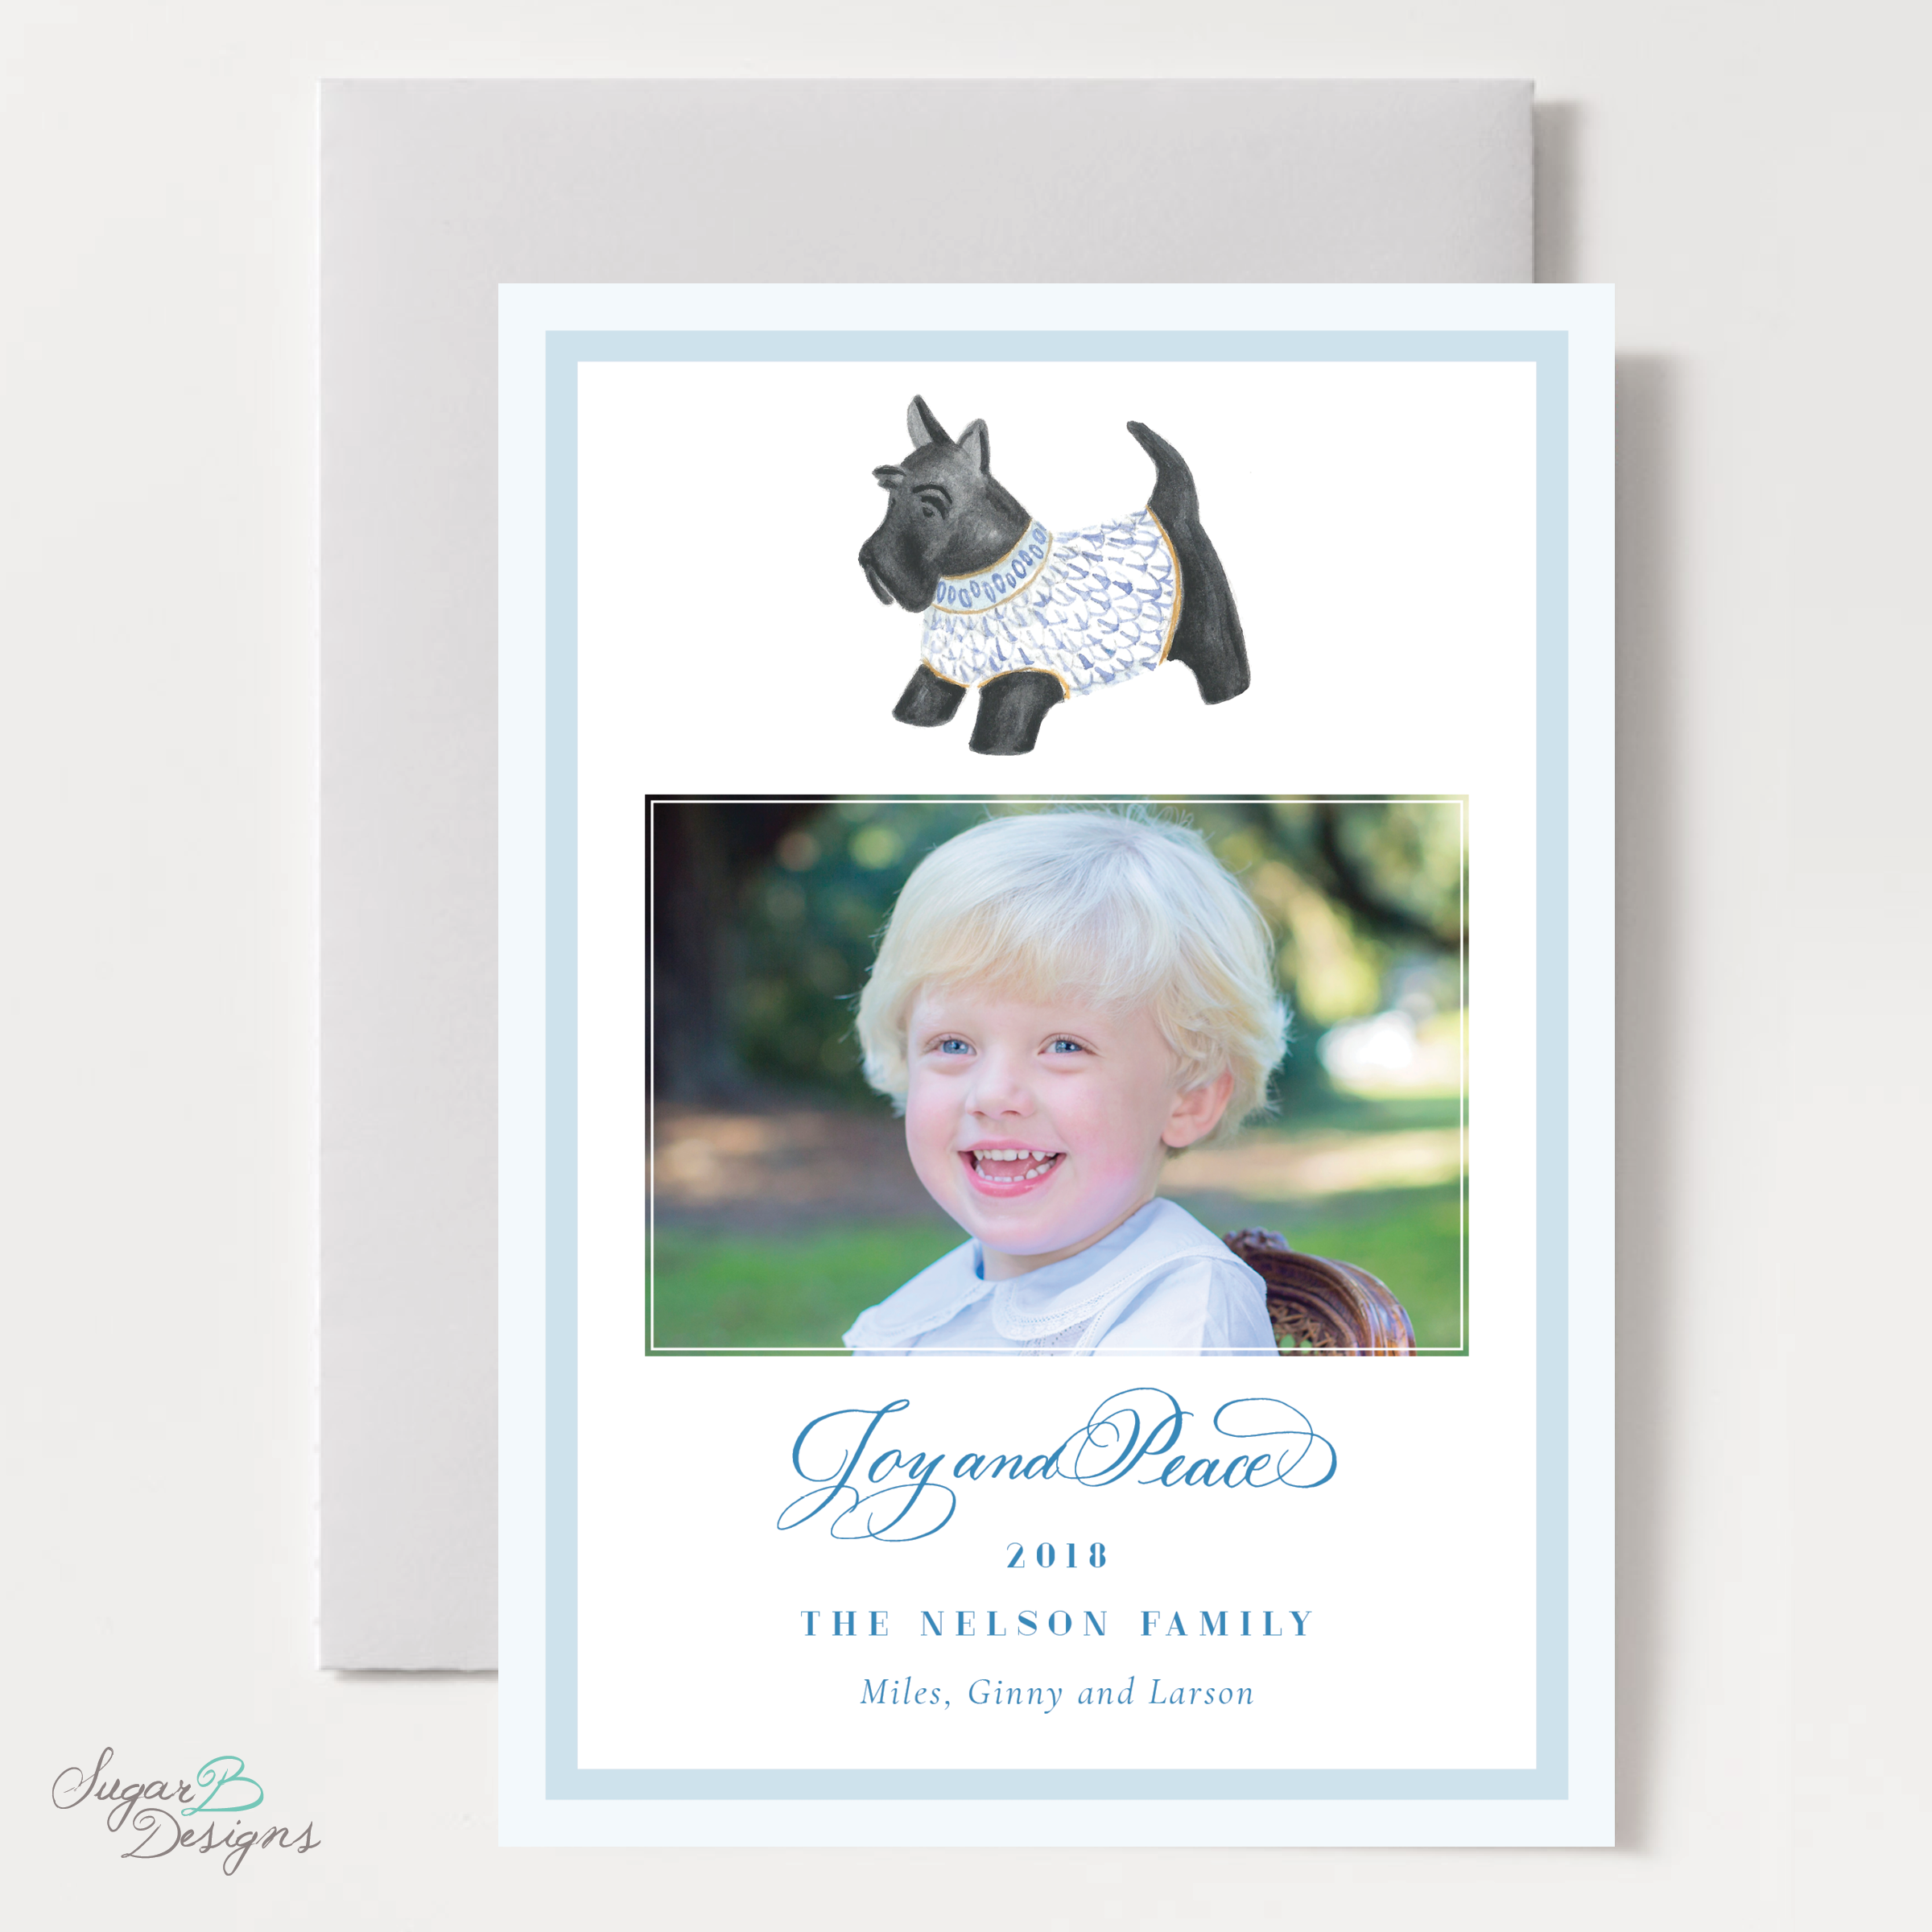 Herend Inspired Scottie Dog Moving Christmas Card front by Sugar B Designs.png